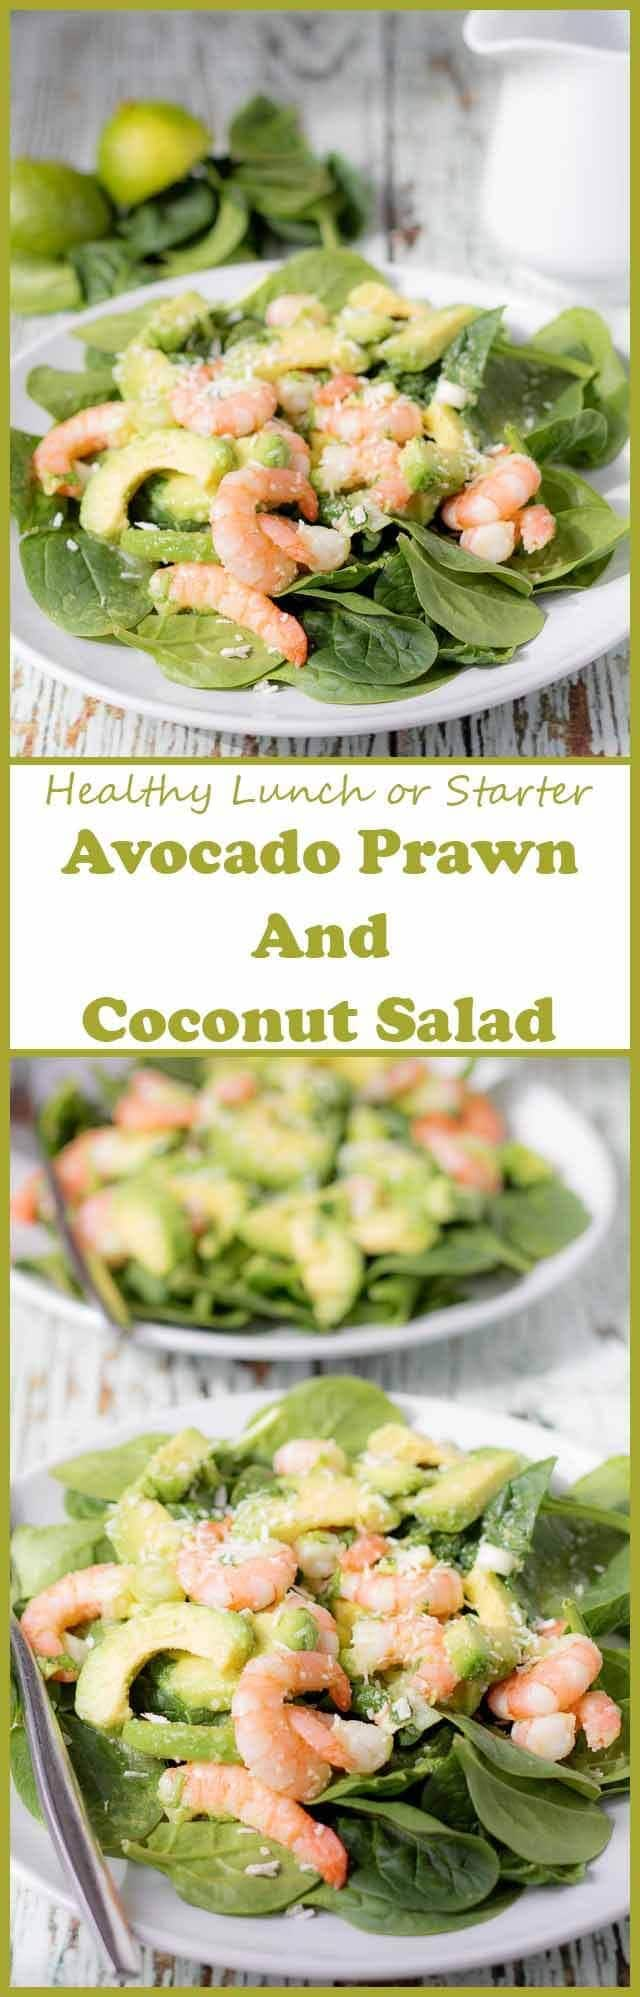 Avocado prawn and coconut salad is a delicious sweet tasting salad that's perfect as a healthy lunch or starter. It's packed full of flavour, made with minimal ingredients and has an amazingly tasty sweet honey coconut dressing to go with it. This perfect salad recipe proves that all salads aren't boring!